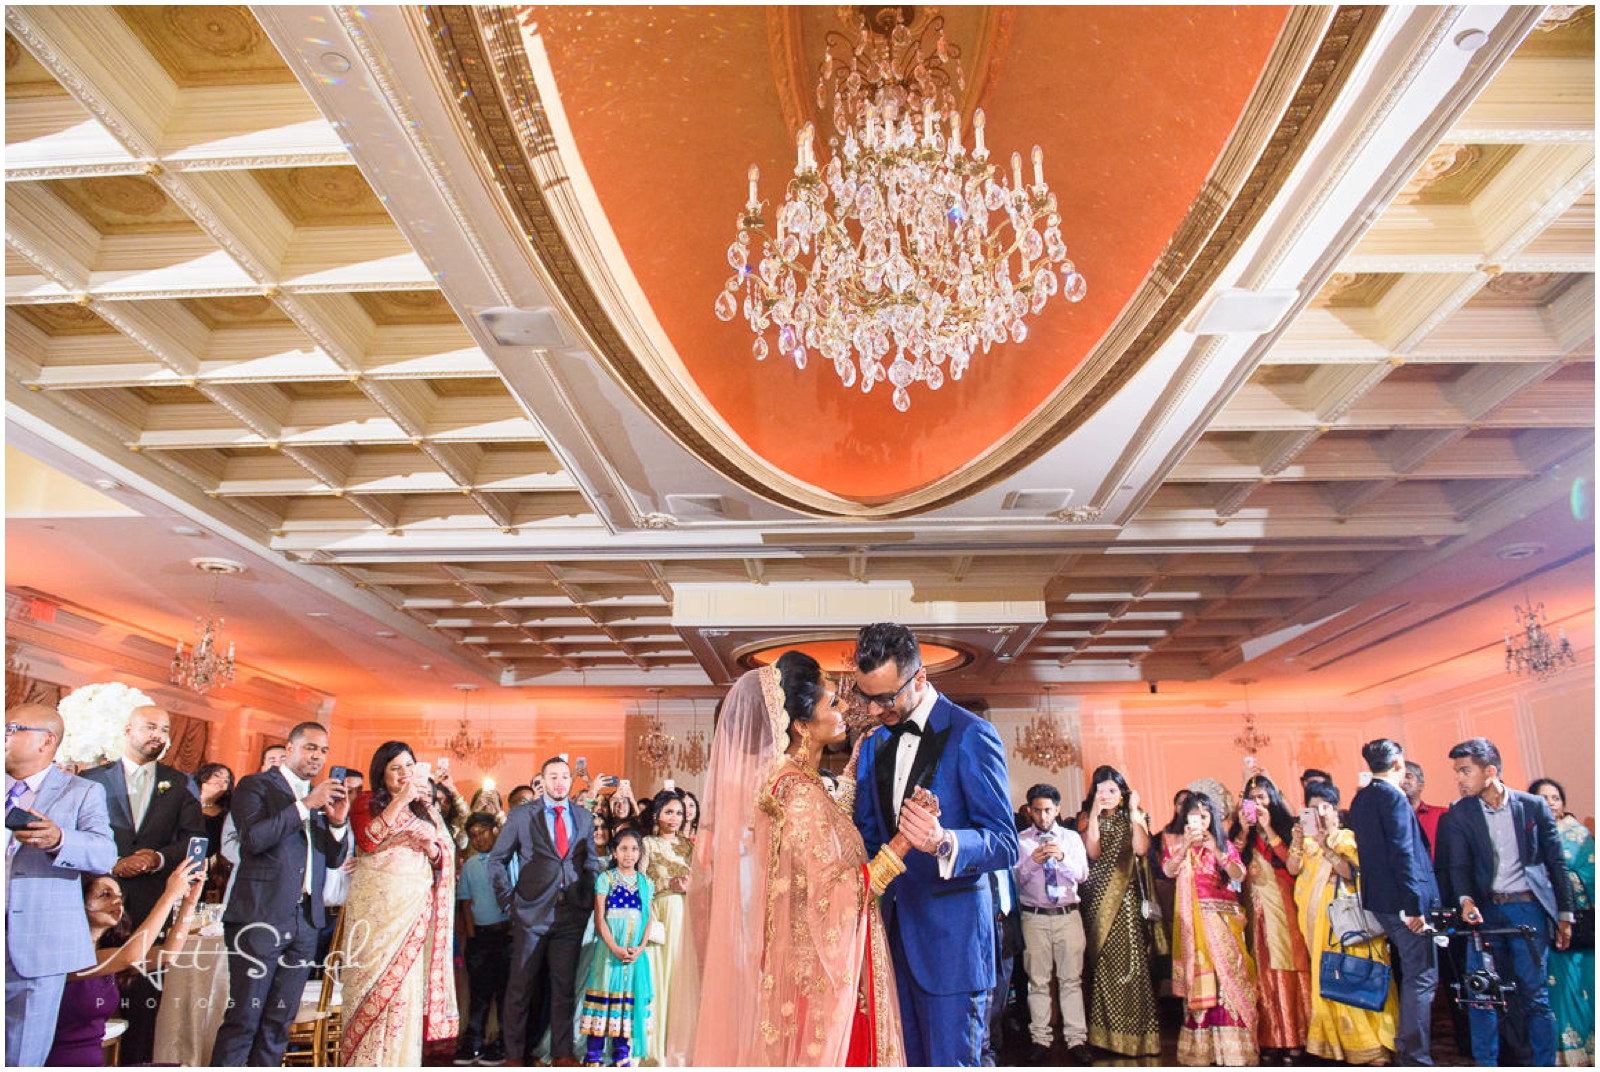 new hyde park hindu singles Nwpp long island jewish (fpplj), new hyde park, ny  33:29 2018-03-15 05:18:30 celebrating hindu culture and  sites/566/2016/09/single-nurse-gettyimages.